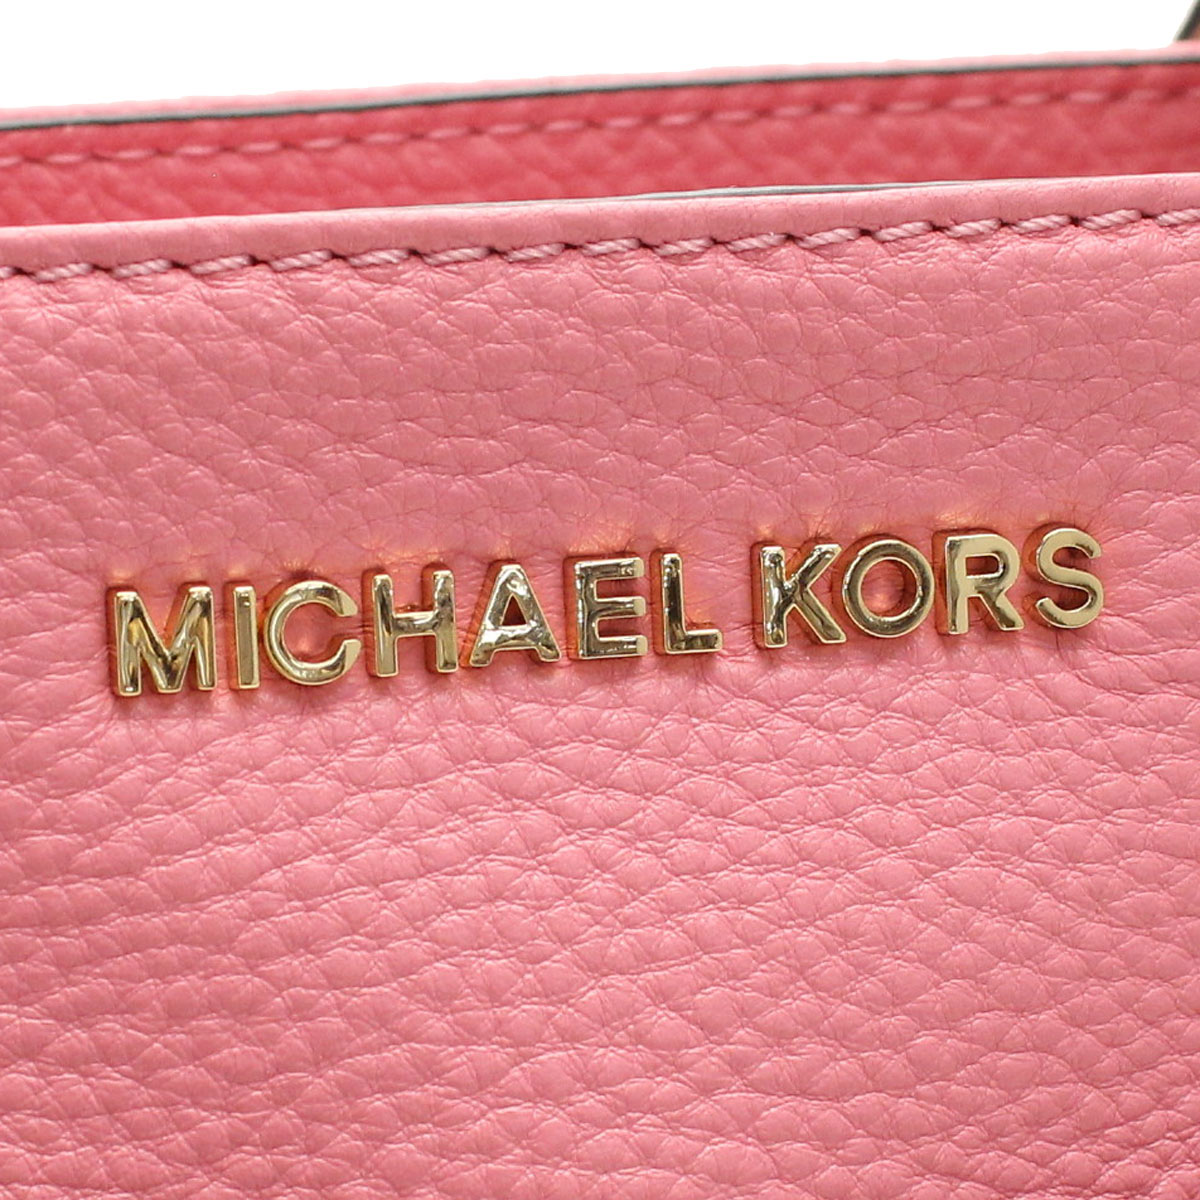 Michael Kors (MICHAEL KORS) BEDFORD tote bag 30H4GBFT6L MISTY ROSE pink( taxfree/send by EMS/authentic/A brand new item )